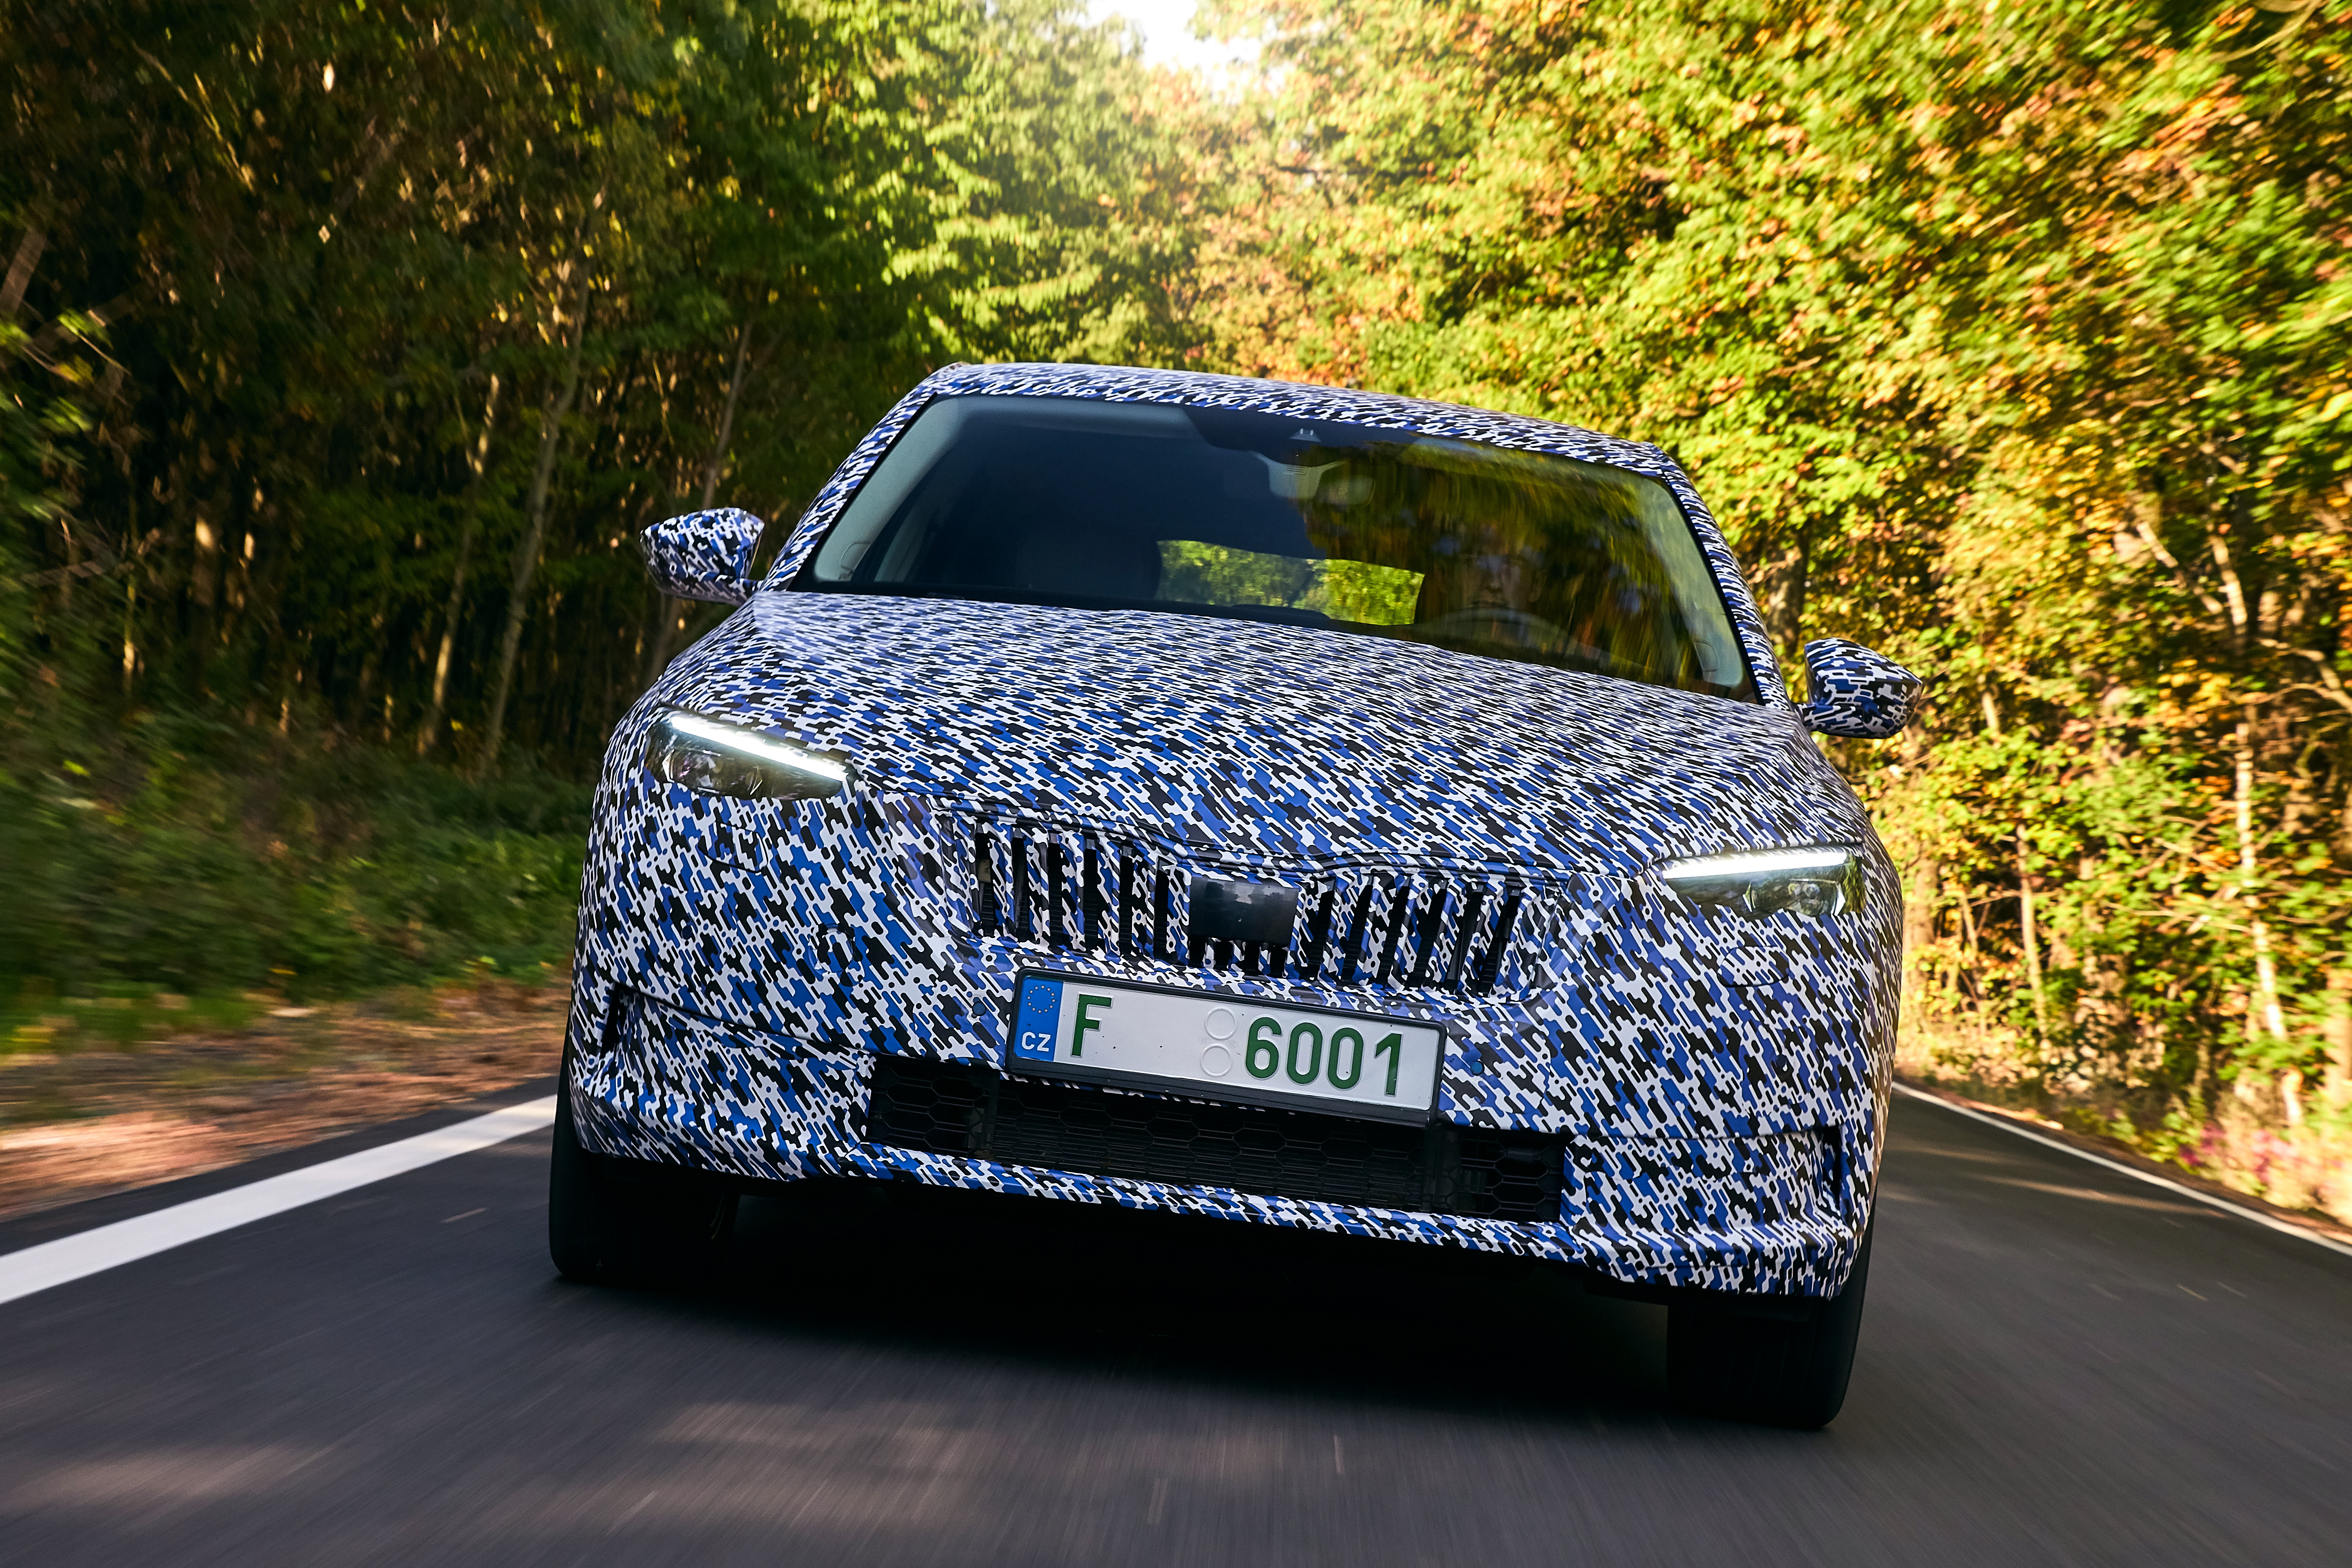 SKODA test mules: The art of camouflage - Image 1